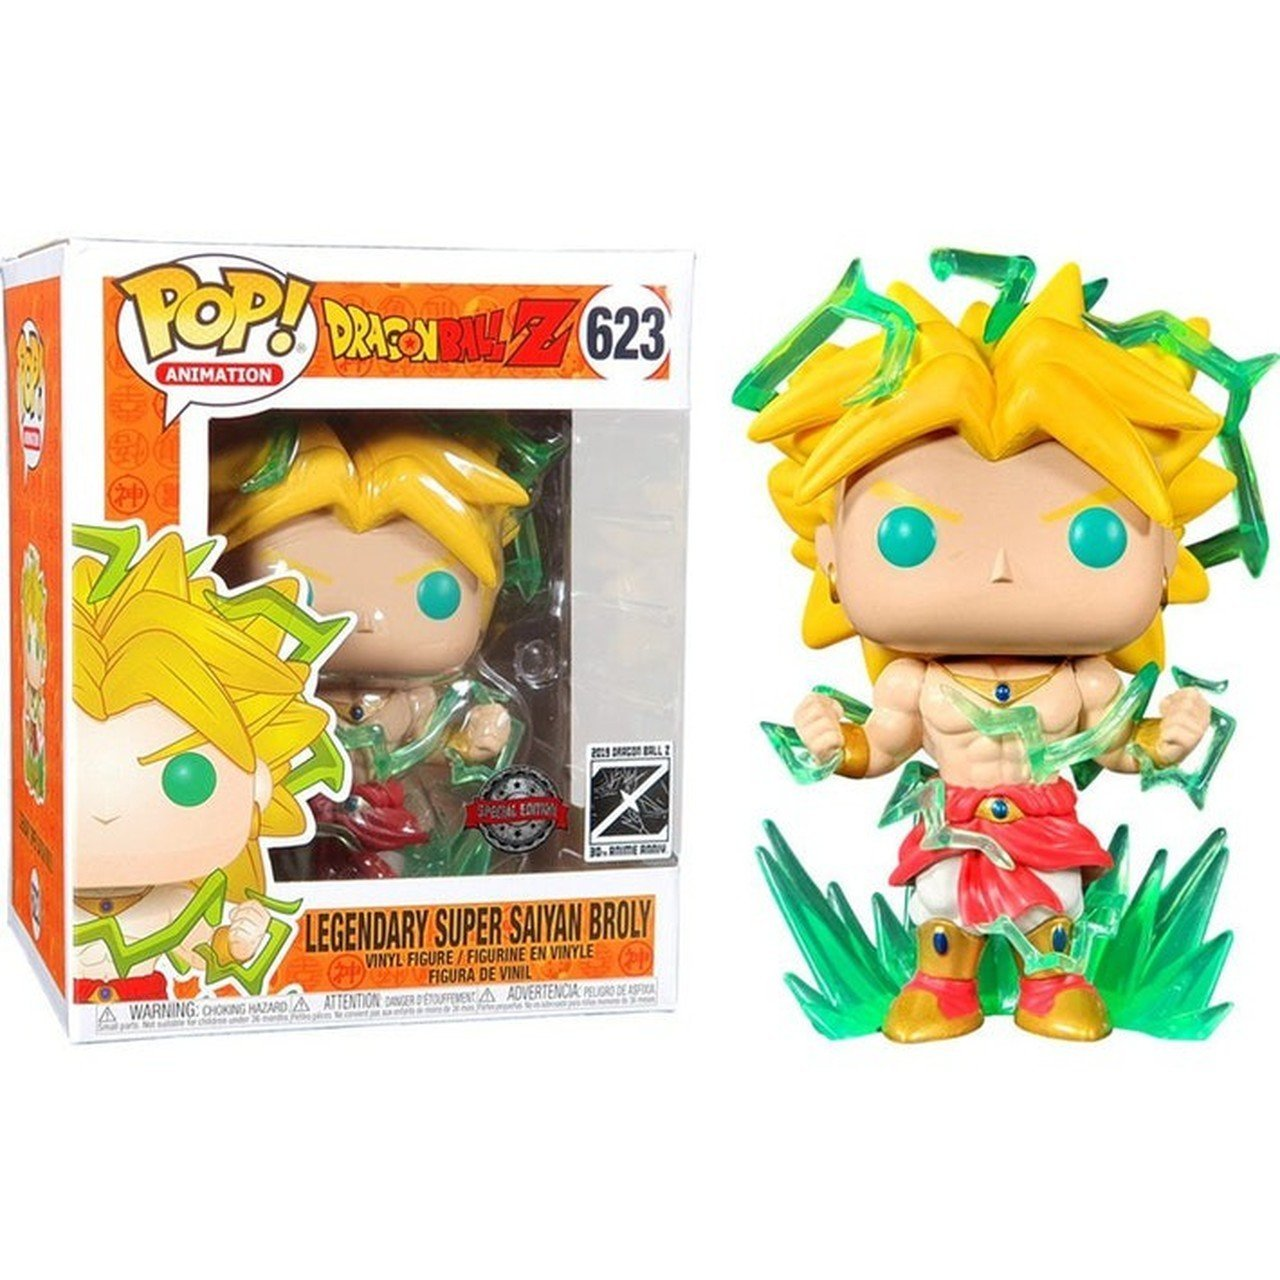 "Dragon Ball Z - Legendary Super Saiyan Broly 6"" Pop! 623 